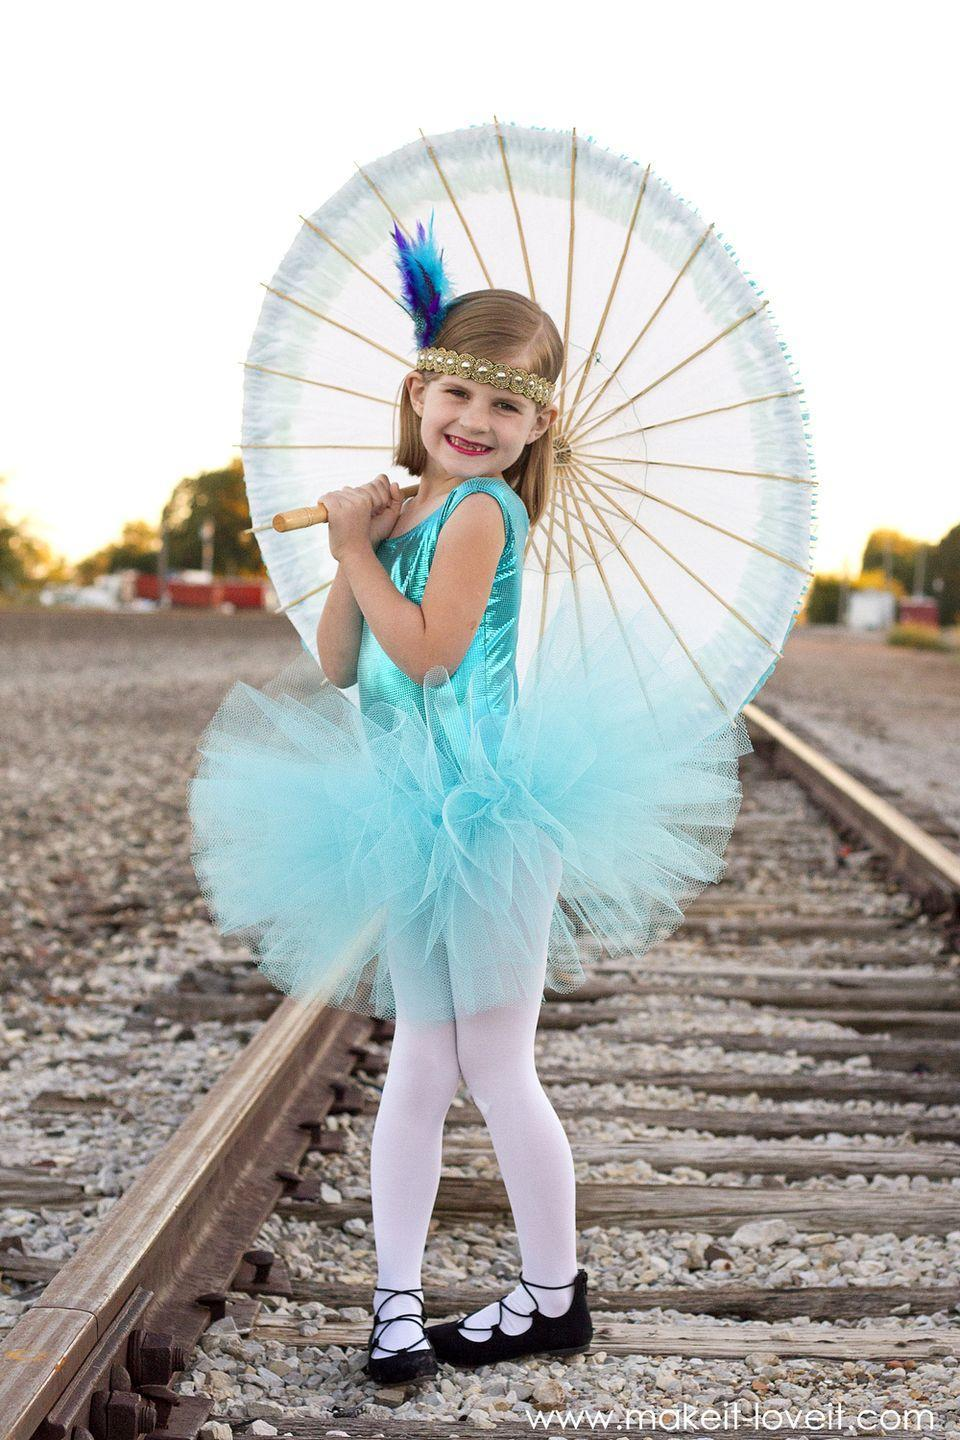 """<p>Your passionate performer will love this bright DIY costume, which features a stiff, thick tulle skirt for extra fluff. Remind her to practice her balancing act before the big show! </p><p><strong>See more at <a href=""""https://makeit-loveit.com/tight-rope-walker-circus-costume"""" rel=""""nofollow noopener"""" target=""""_blank"""" data-ylk=""""slk:Make It & Love It"""" class=""""link rapid-noclick-resp"""">Make It & Love It</a>. </strong></p><p><a class=""""link rapid-noclick-resp"""" href=""""https://www.amazon.com/Celine-lin-Feather-Wedding-6-8inch/dp/B01FU0RTMG?tag=syn-yahoo-20&ascsubtag=%5Bartid%7C10050.g.29402076%5Bsrc%7Cyahoo-us"""" rel=""""nofollow noopener"""" target=""""_blank"""" data-ylk=""""slk:SHOP FEATHERS"""">SHOP FEATHERS</a></p>"""